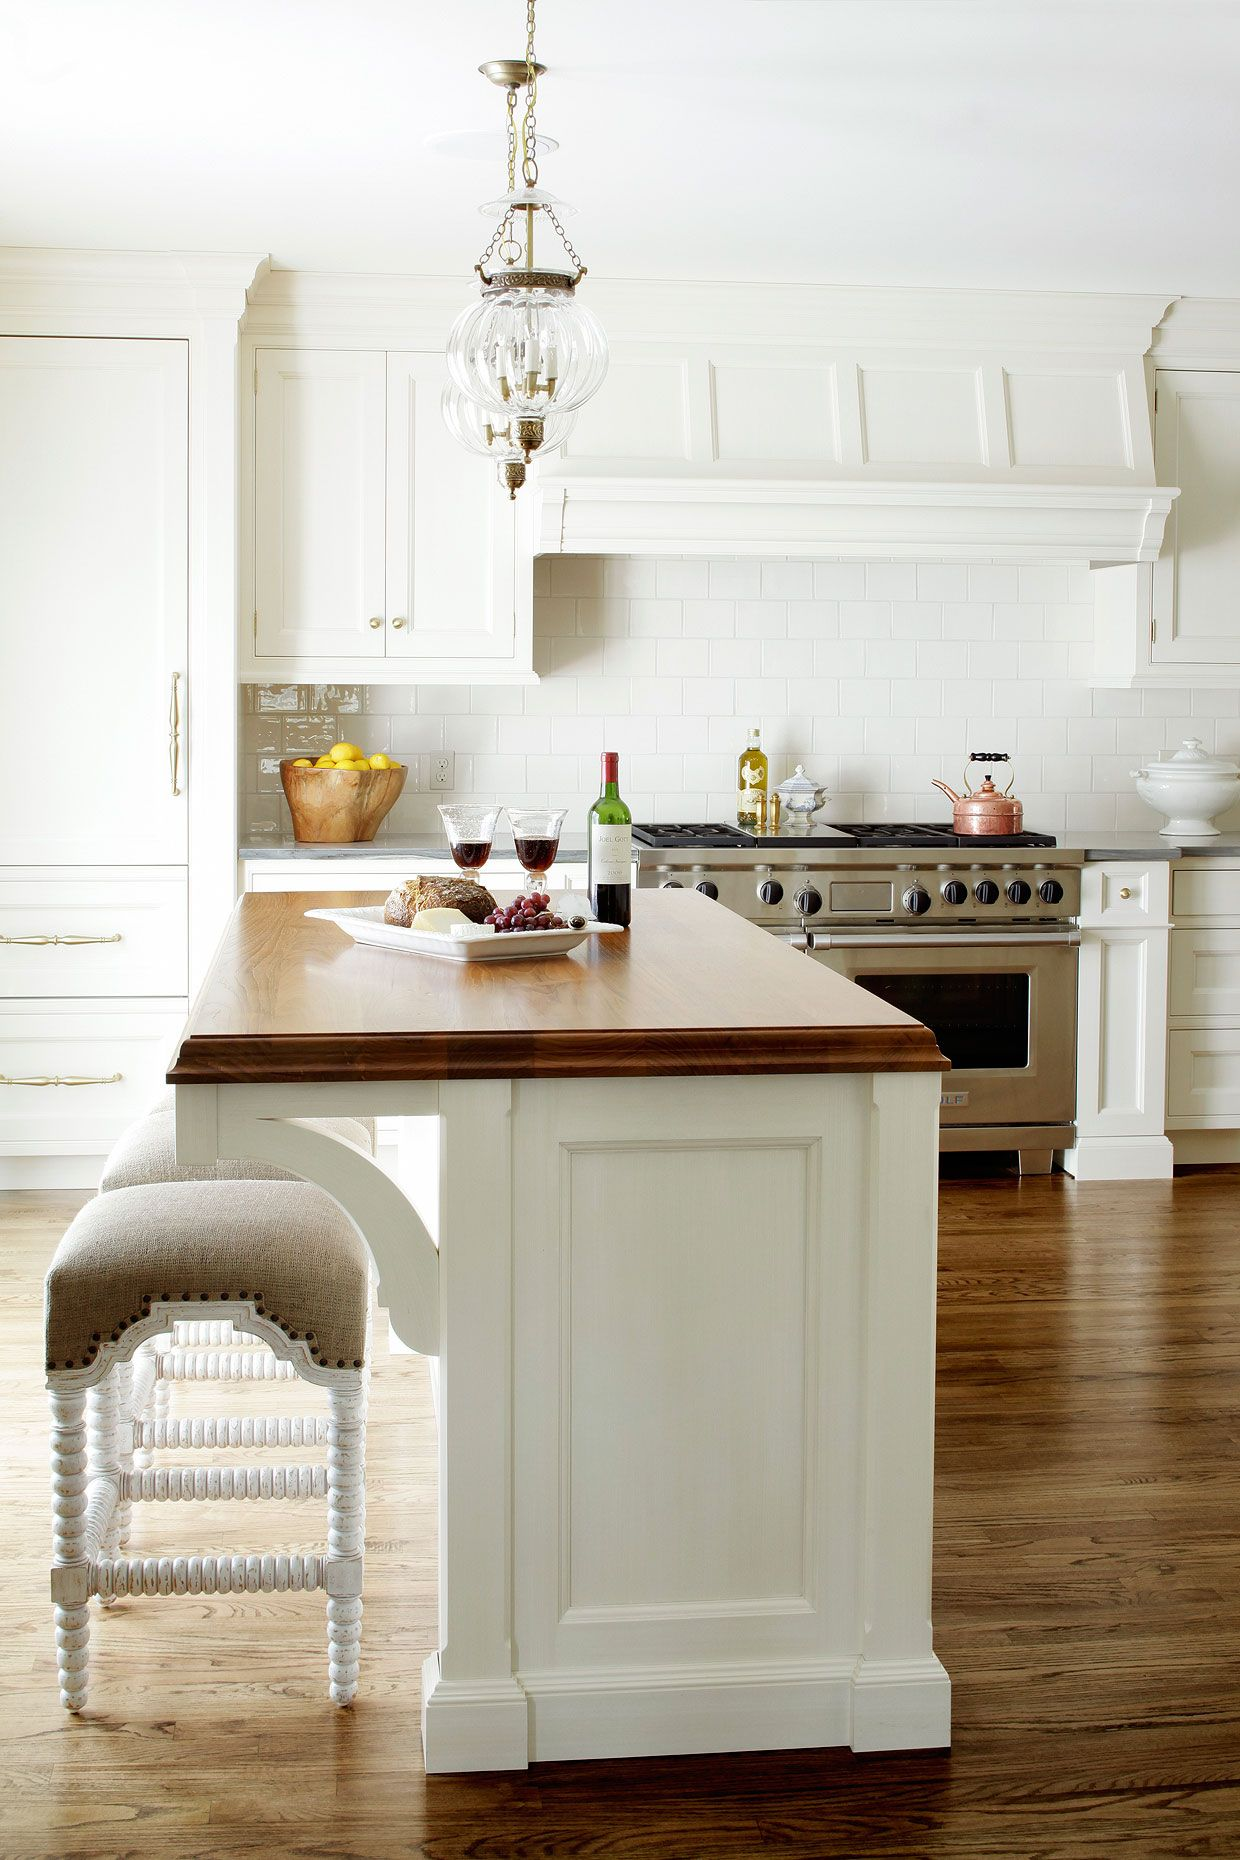 Heidi Piron Design and Cabinetry - Traditional - 12 | Kitchen Design ...